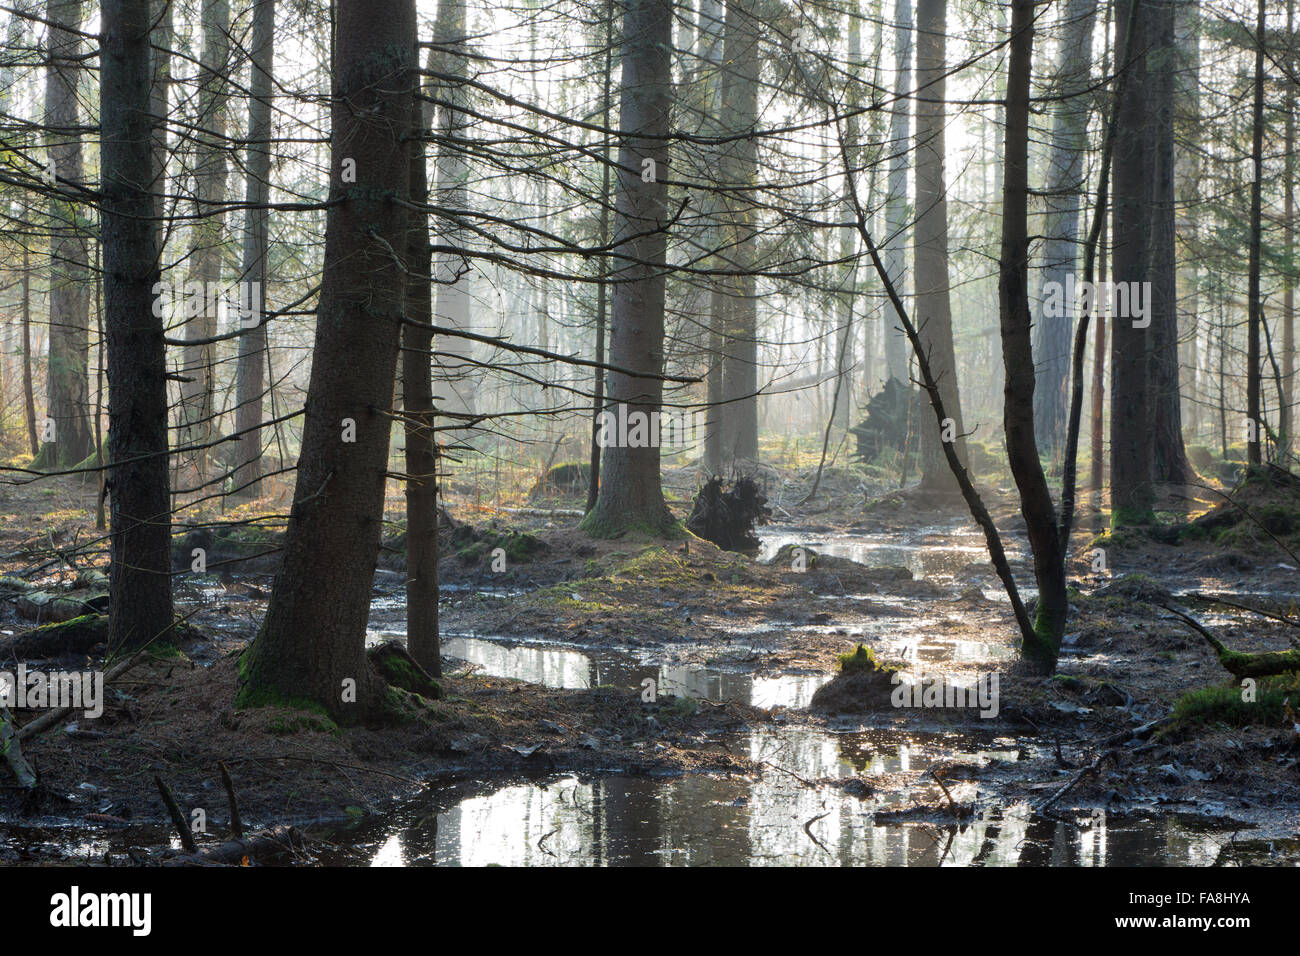 Coniferous stand of Bialowieza Forest in morning with pine and spruce,Bialowieza Forest,Poland,Europe - Stock Image